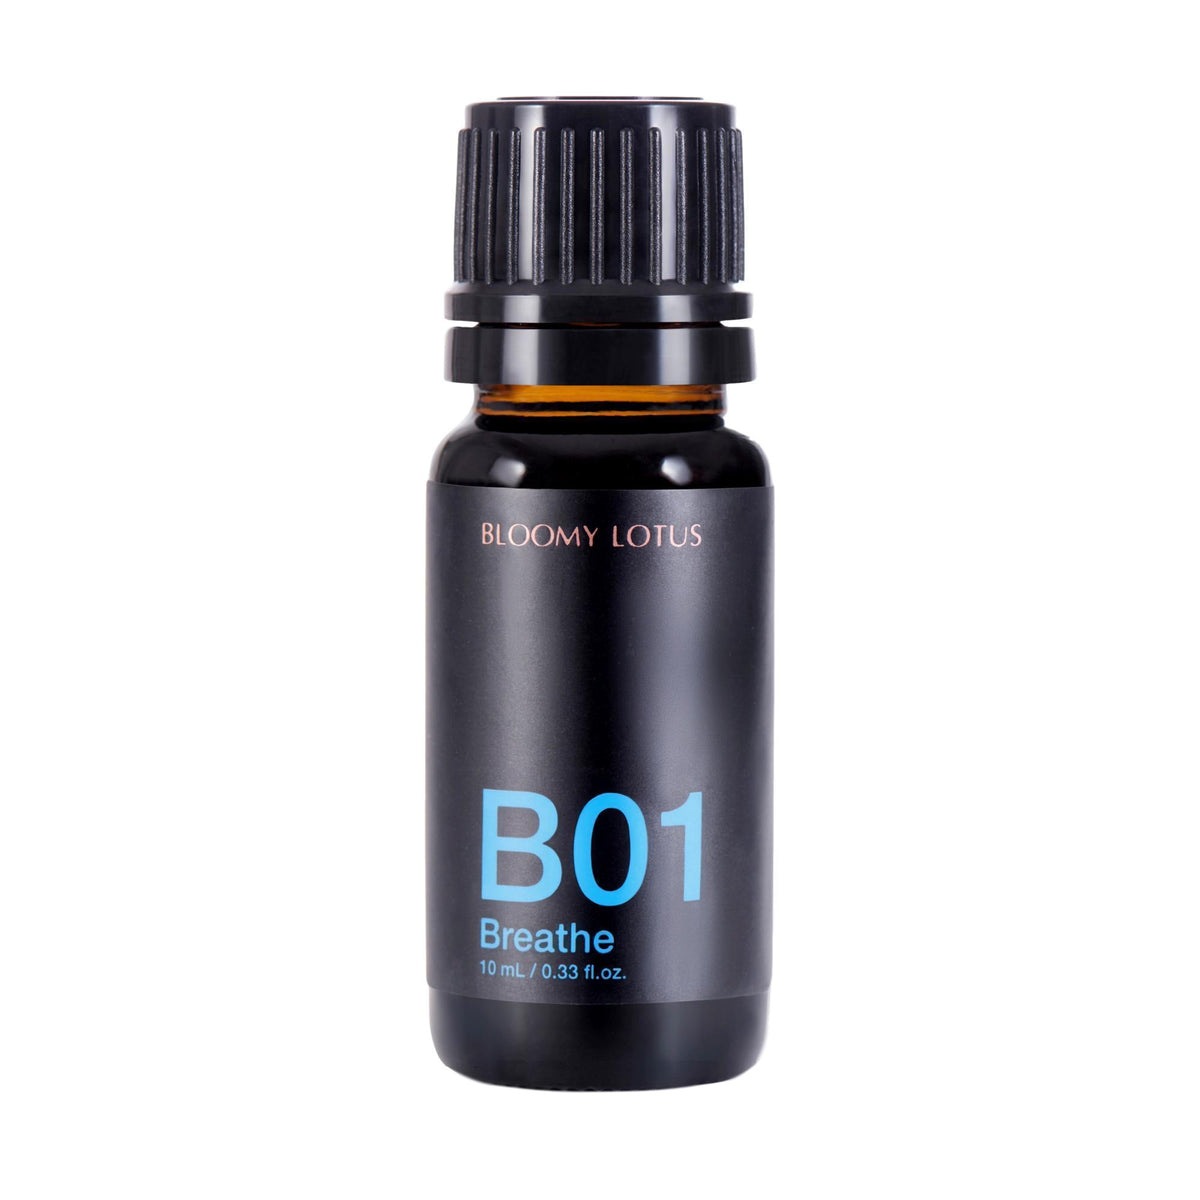 Bloomy Lotus B01 Breathe Essential Oil, 10 ml